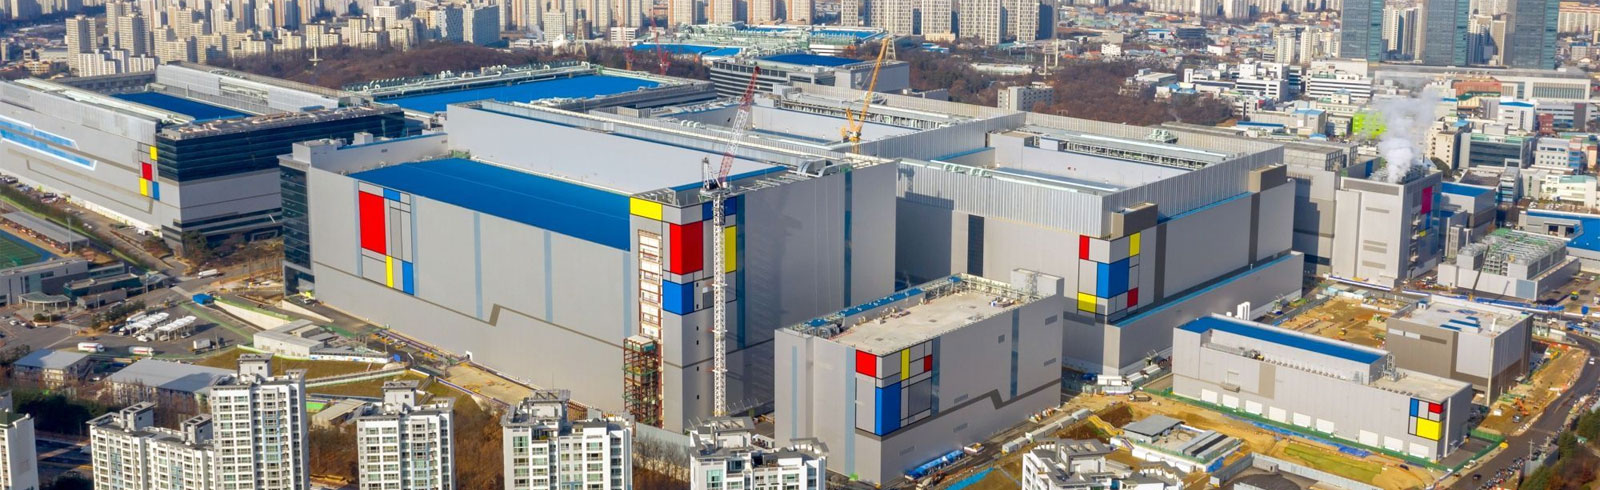 Samsung has begun mass production of its EUV chipset in its V1 plant